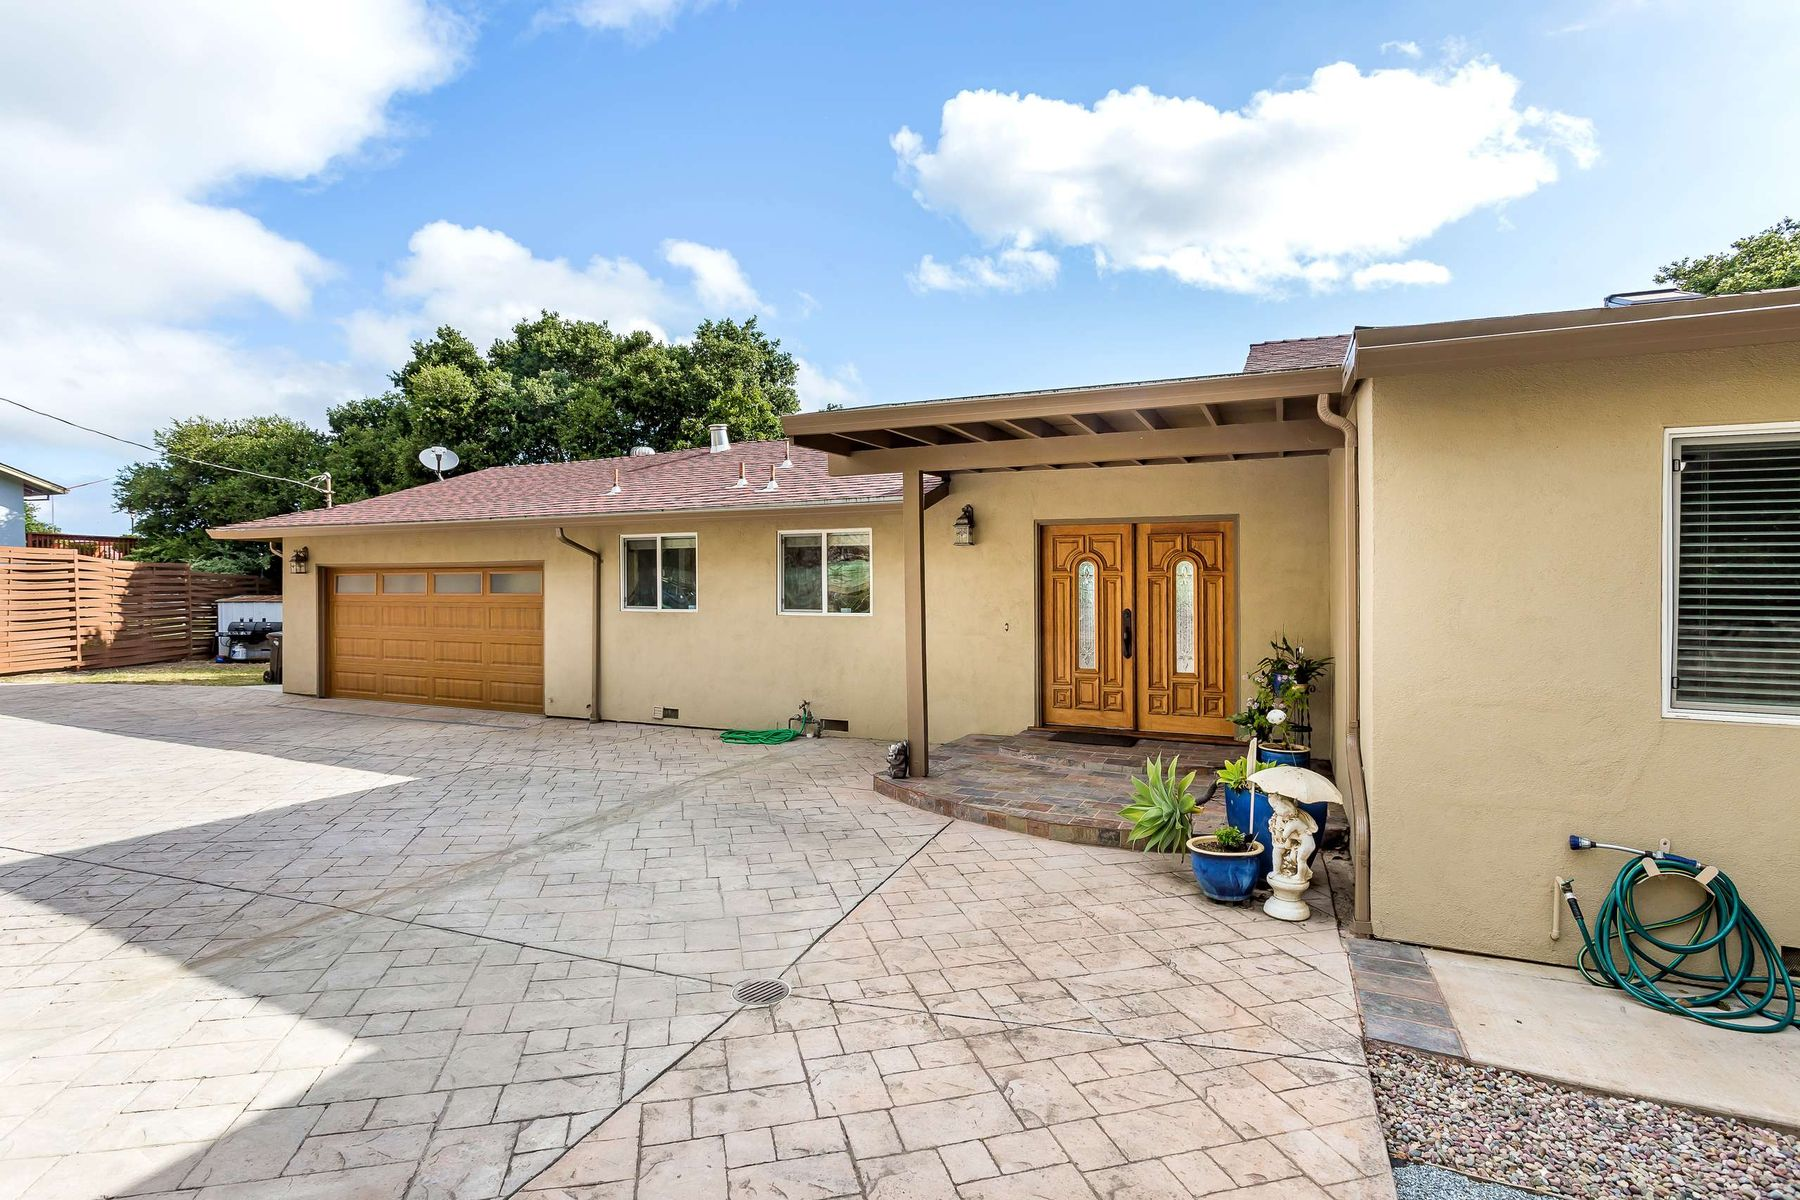 single family homes for Active at Elegant Rancher With Views and Privacy 1239 Talbryn Dr Belmont, California 94002 United States